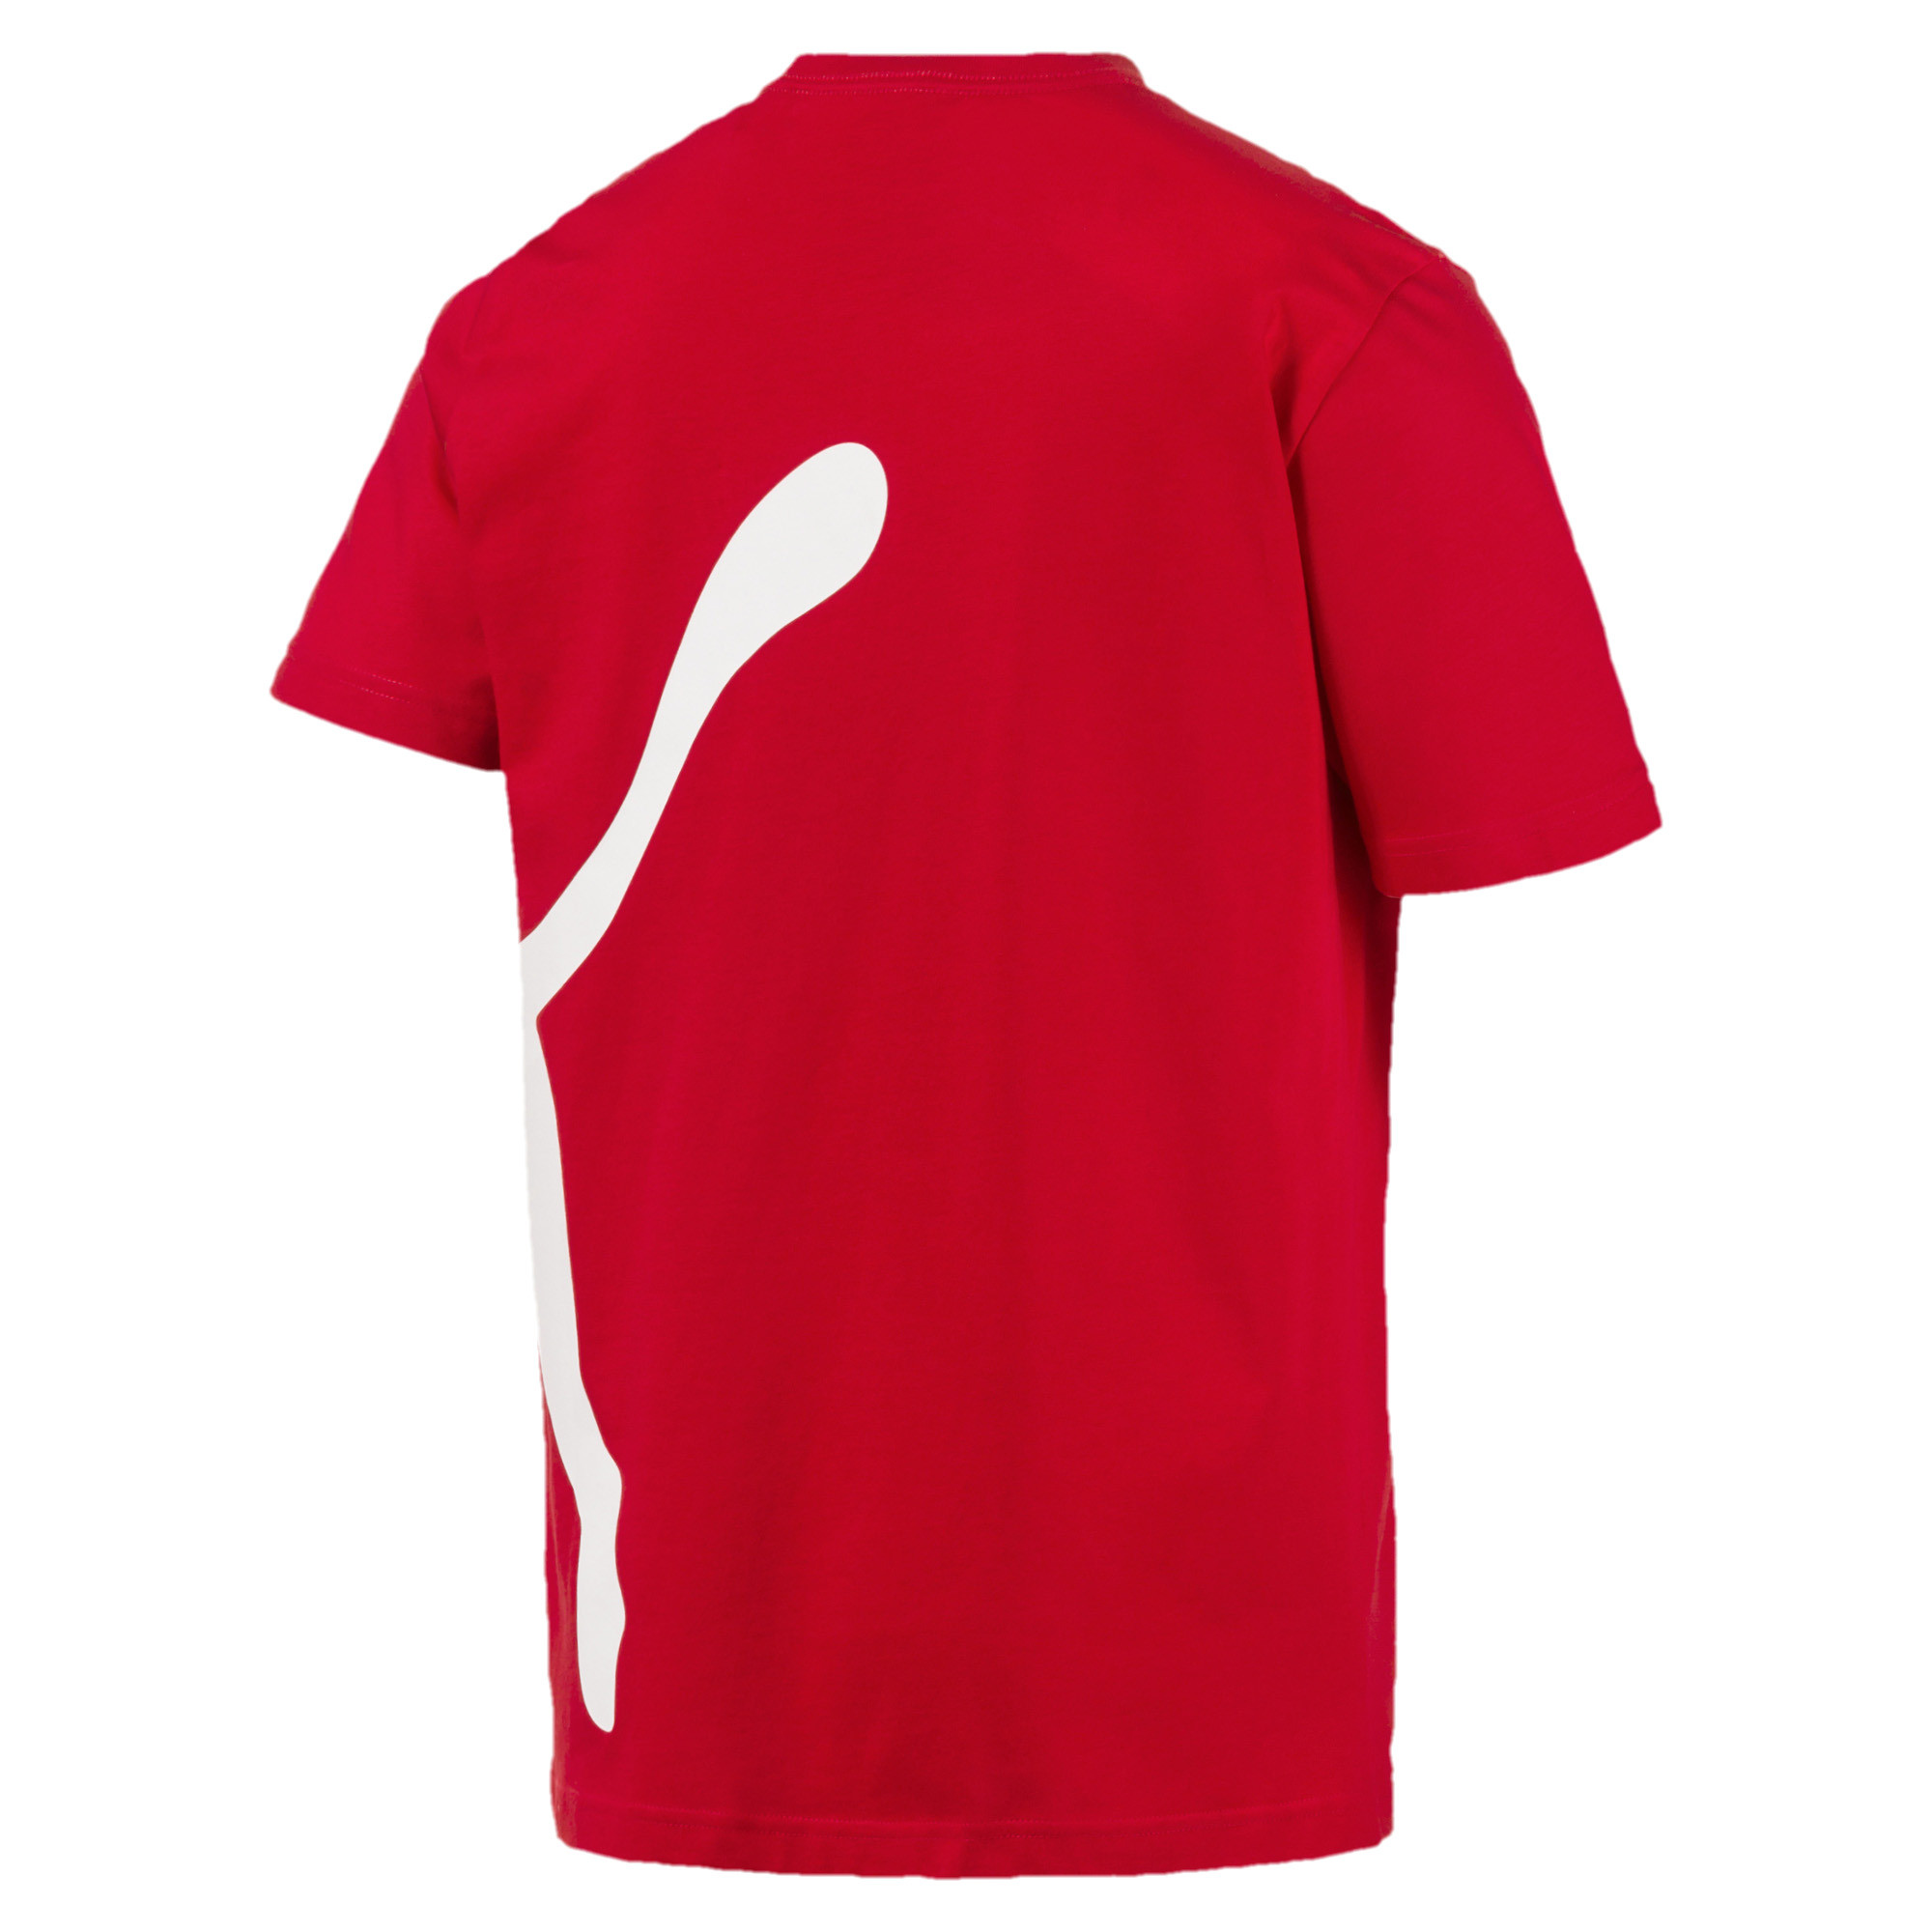 PUMA-Big-Logo-Men-039-s-Tee-Men-Tee-Basics thumbnail 13